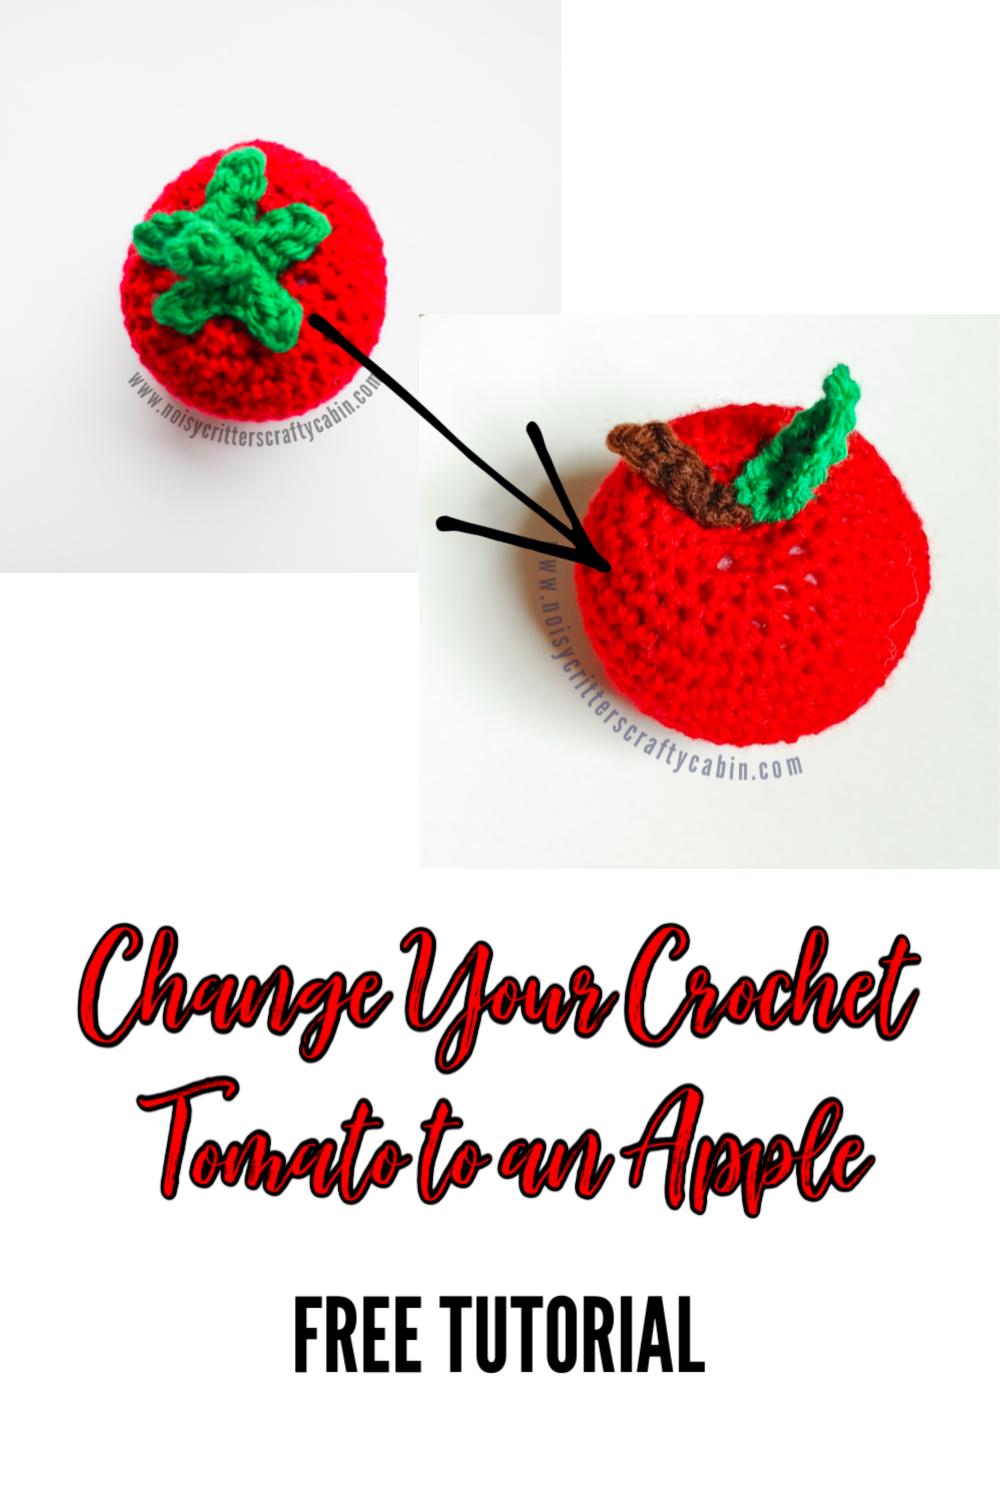 Turn Your Crochet Tomato into an Apple